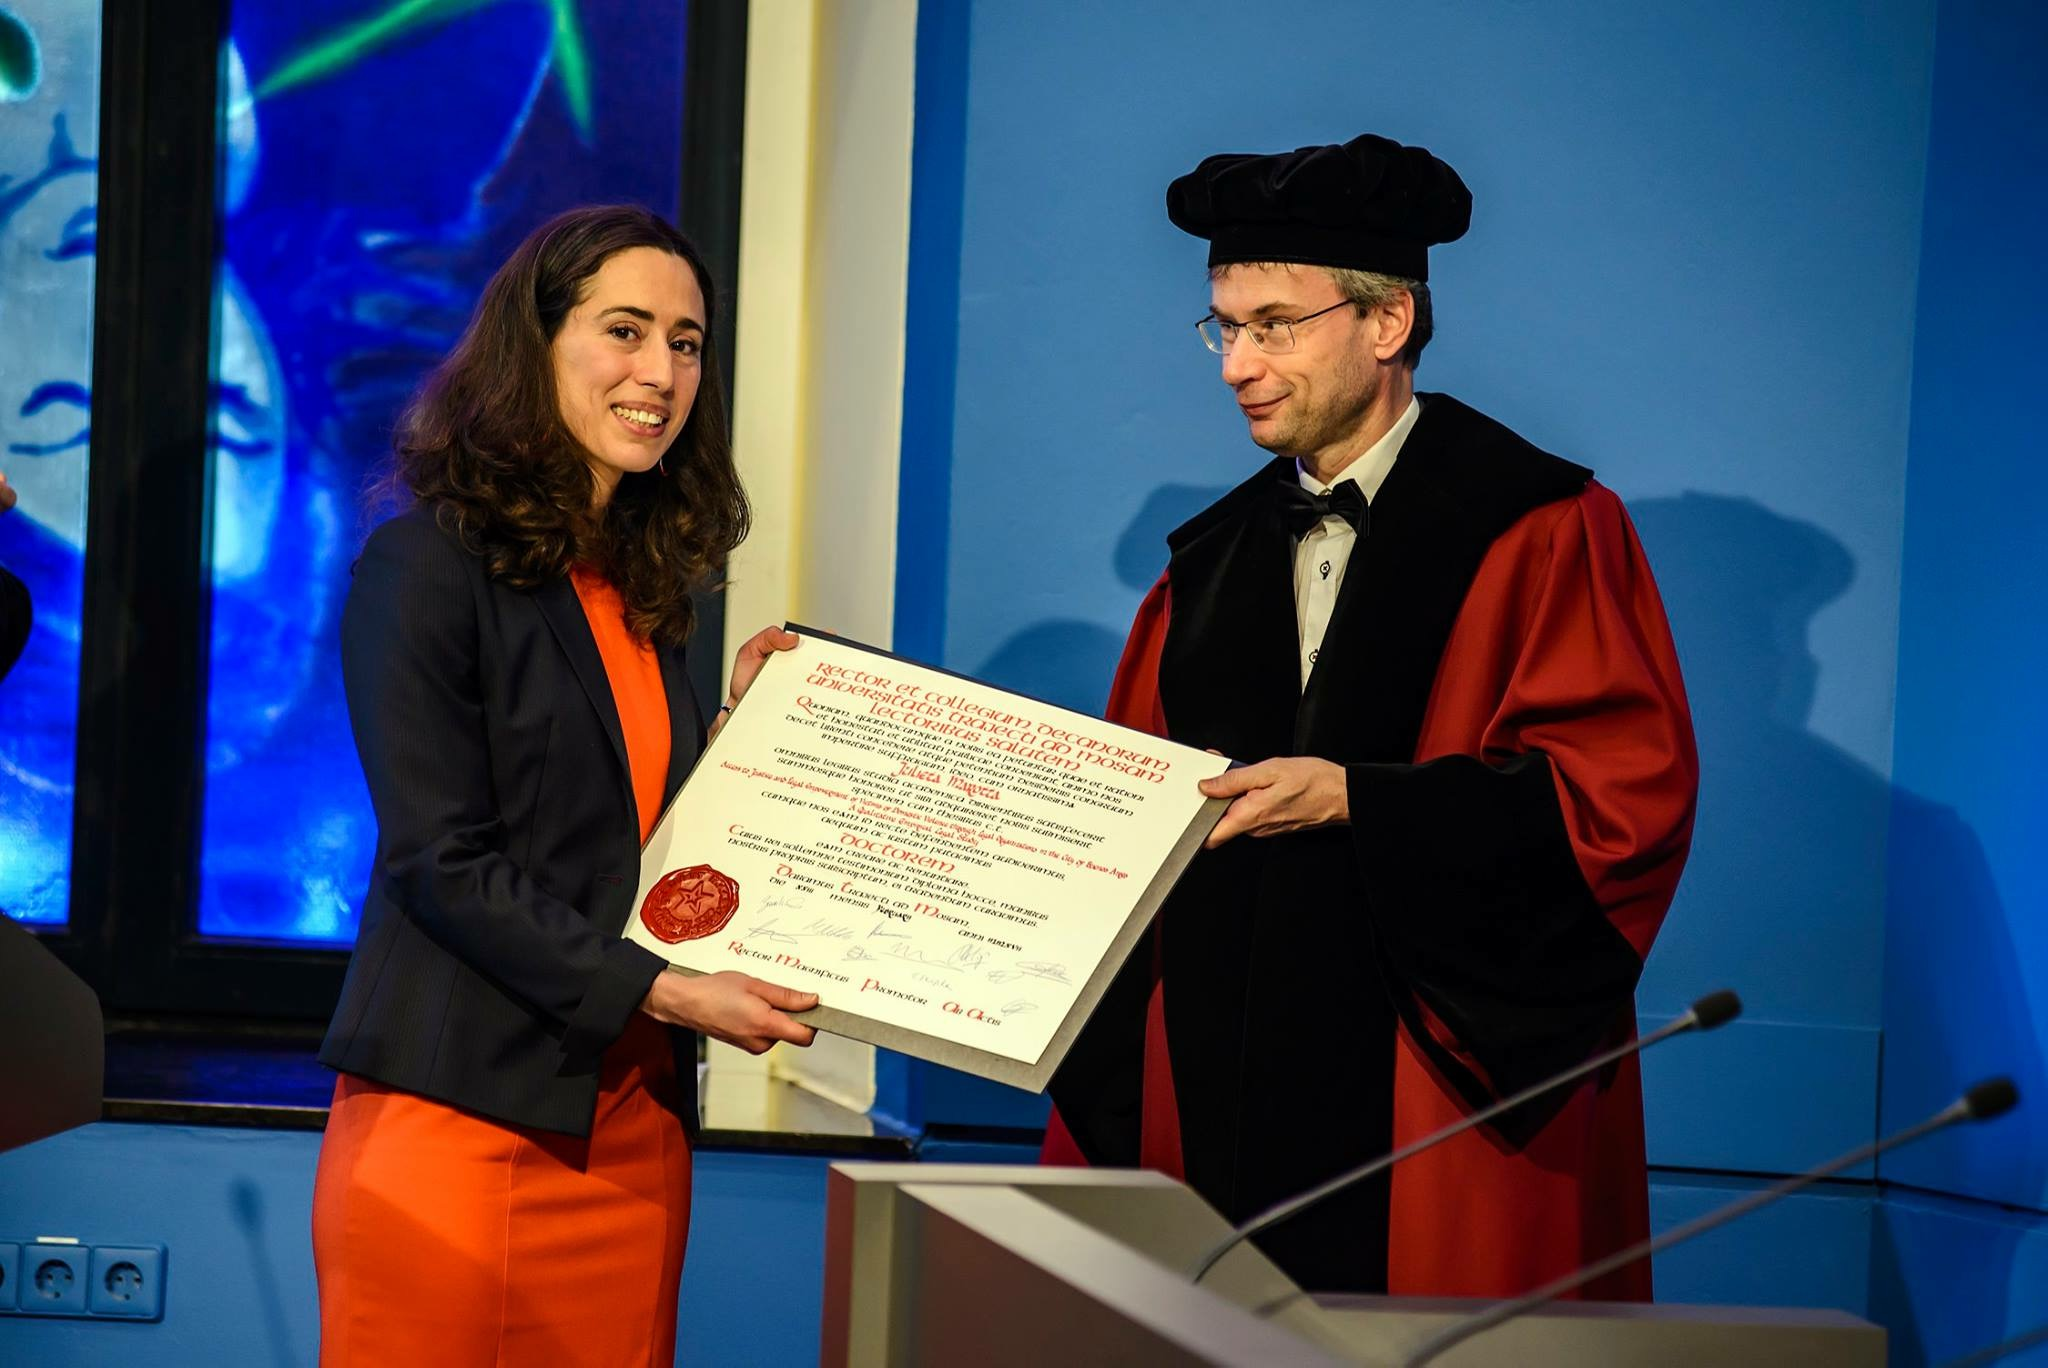 Doctoral thesis in law